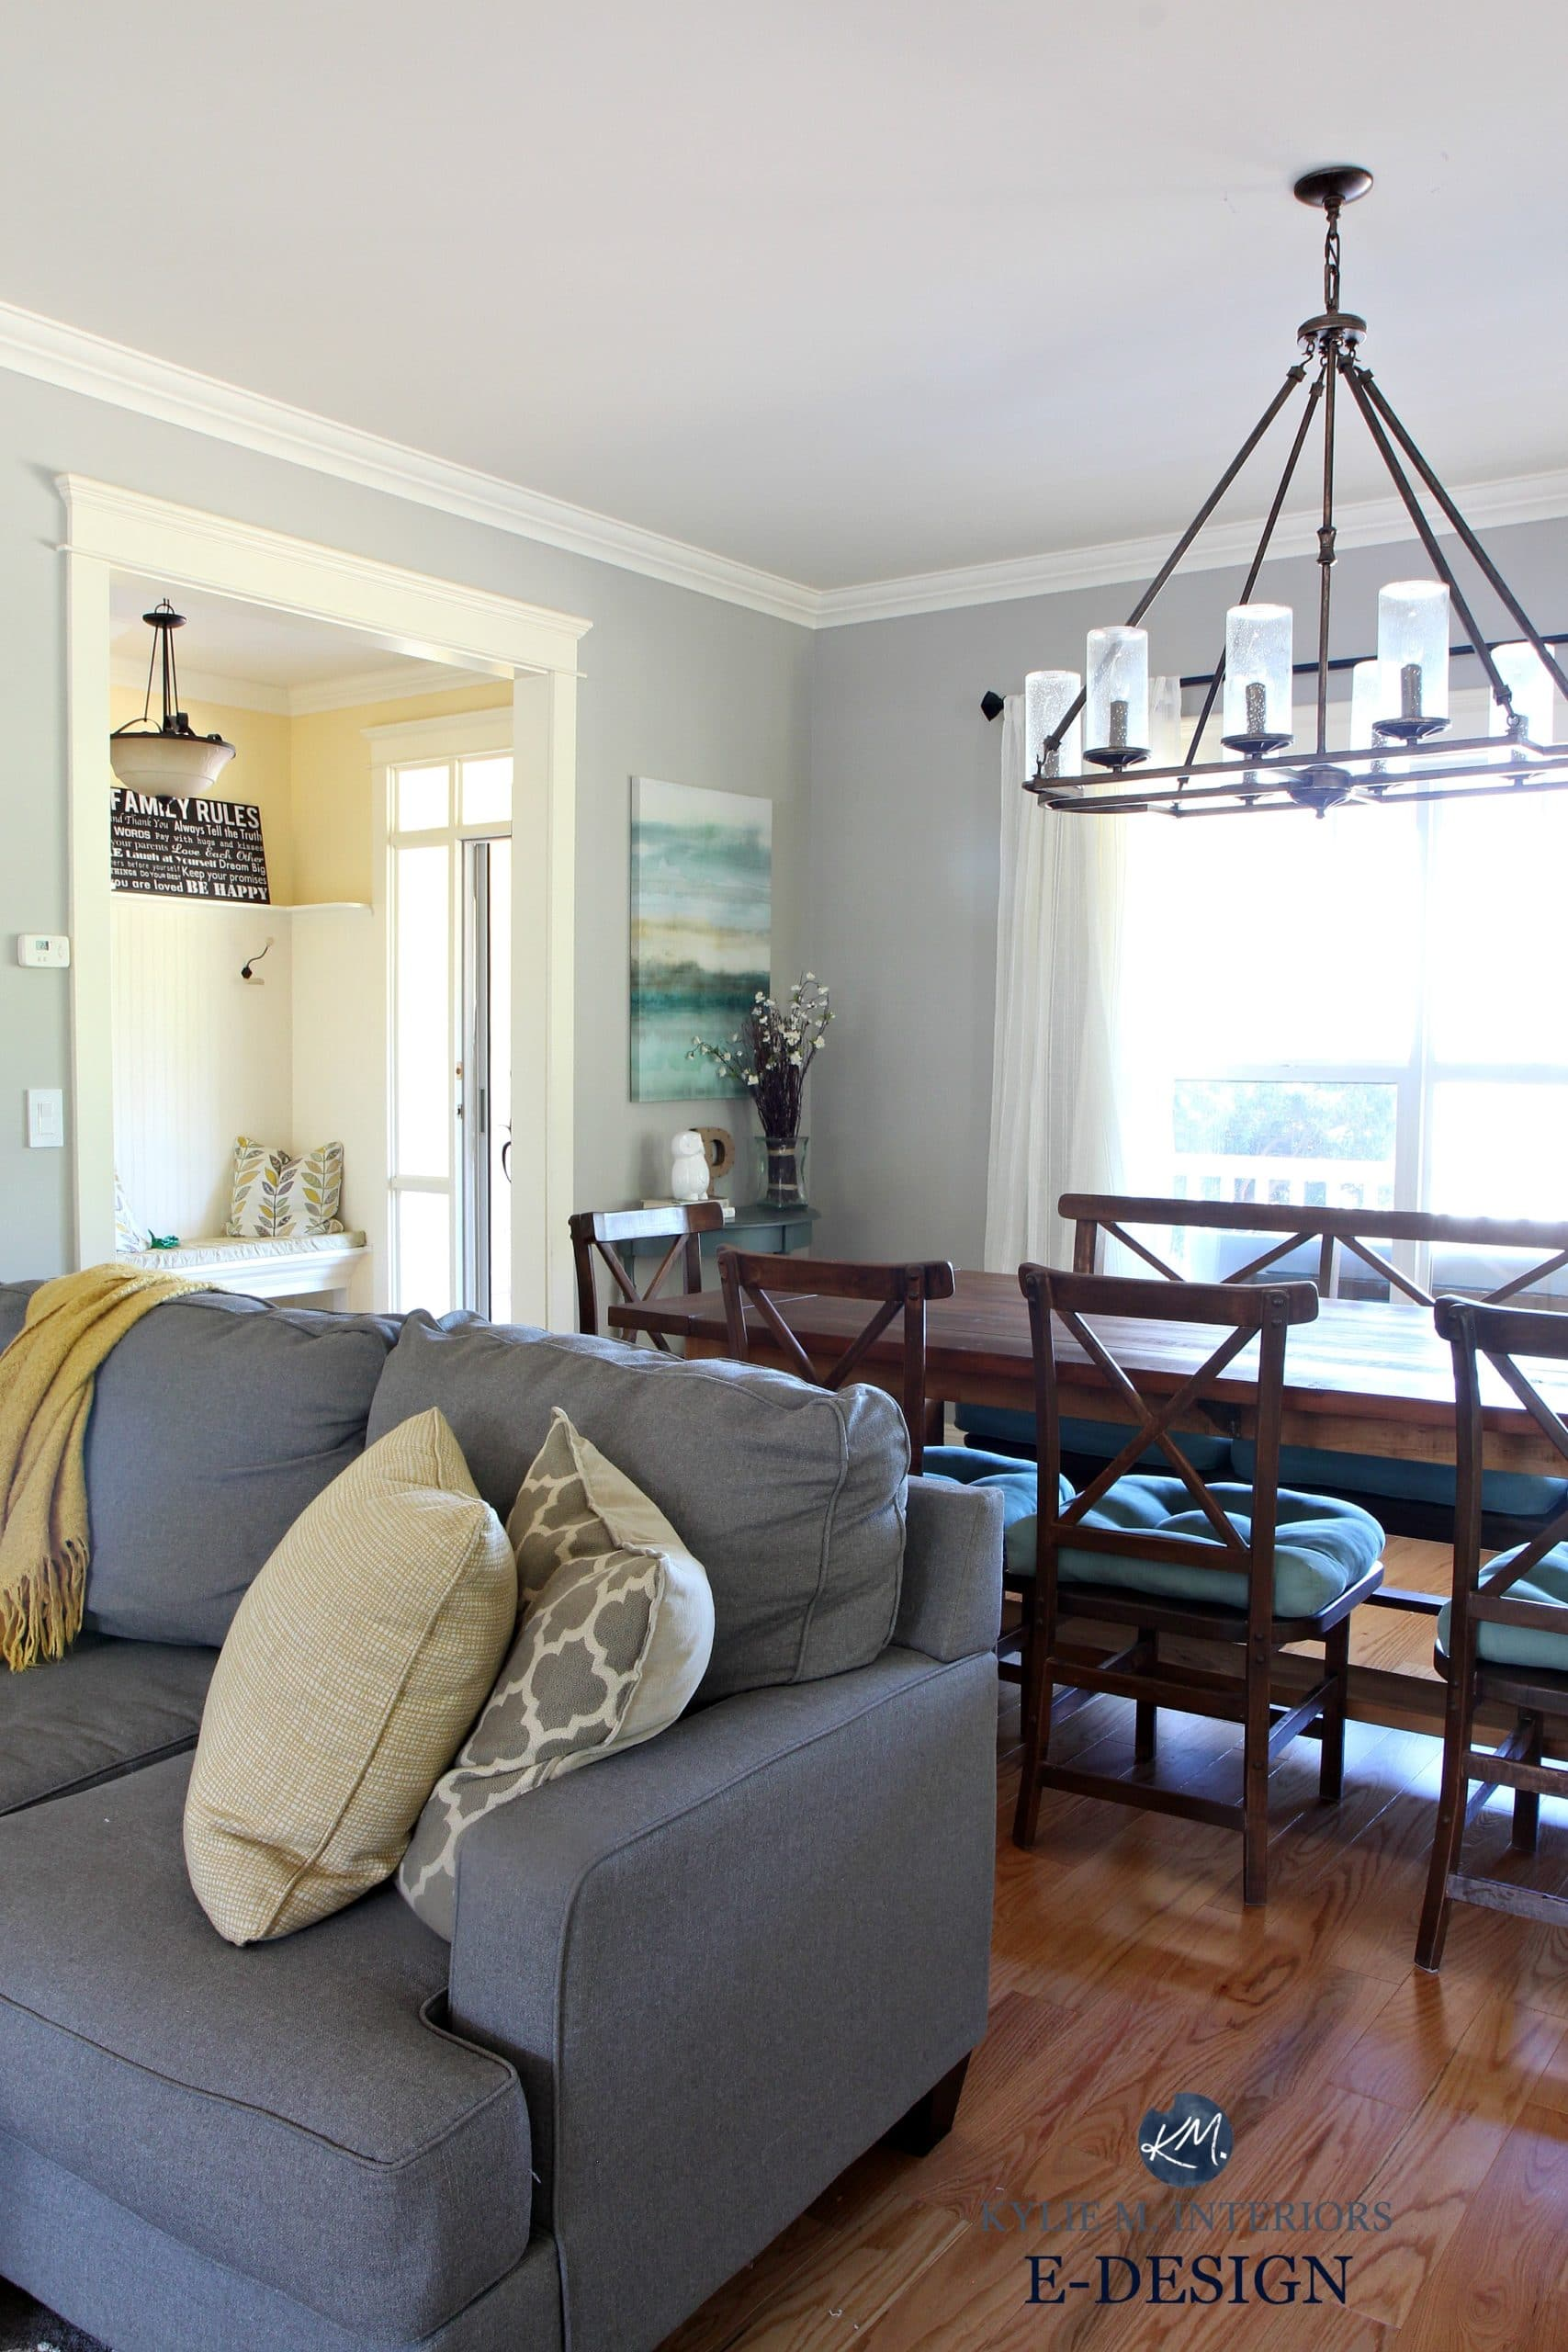 My Yellow Farmhouse Blog Benjamin Moore Revere Pewter In Living Room With Gray